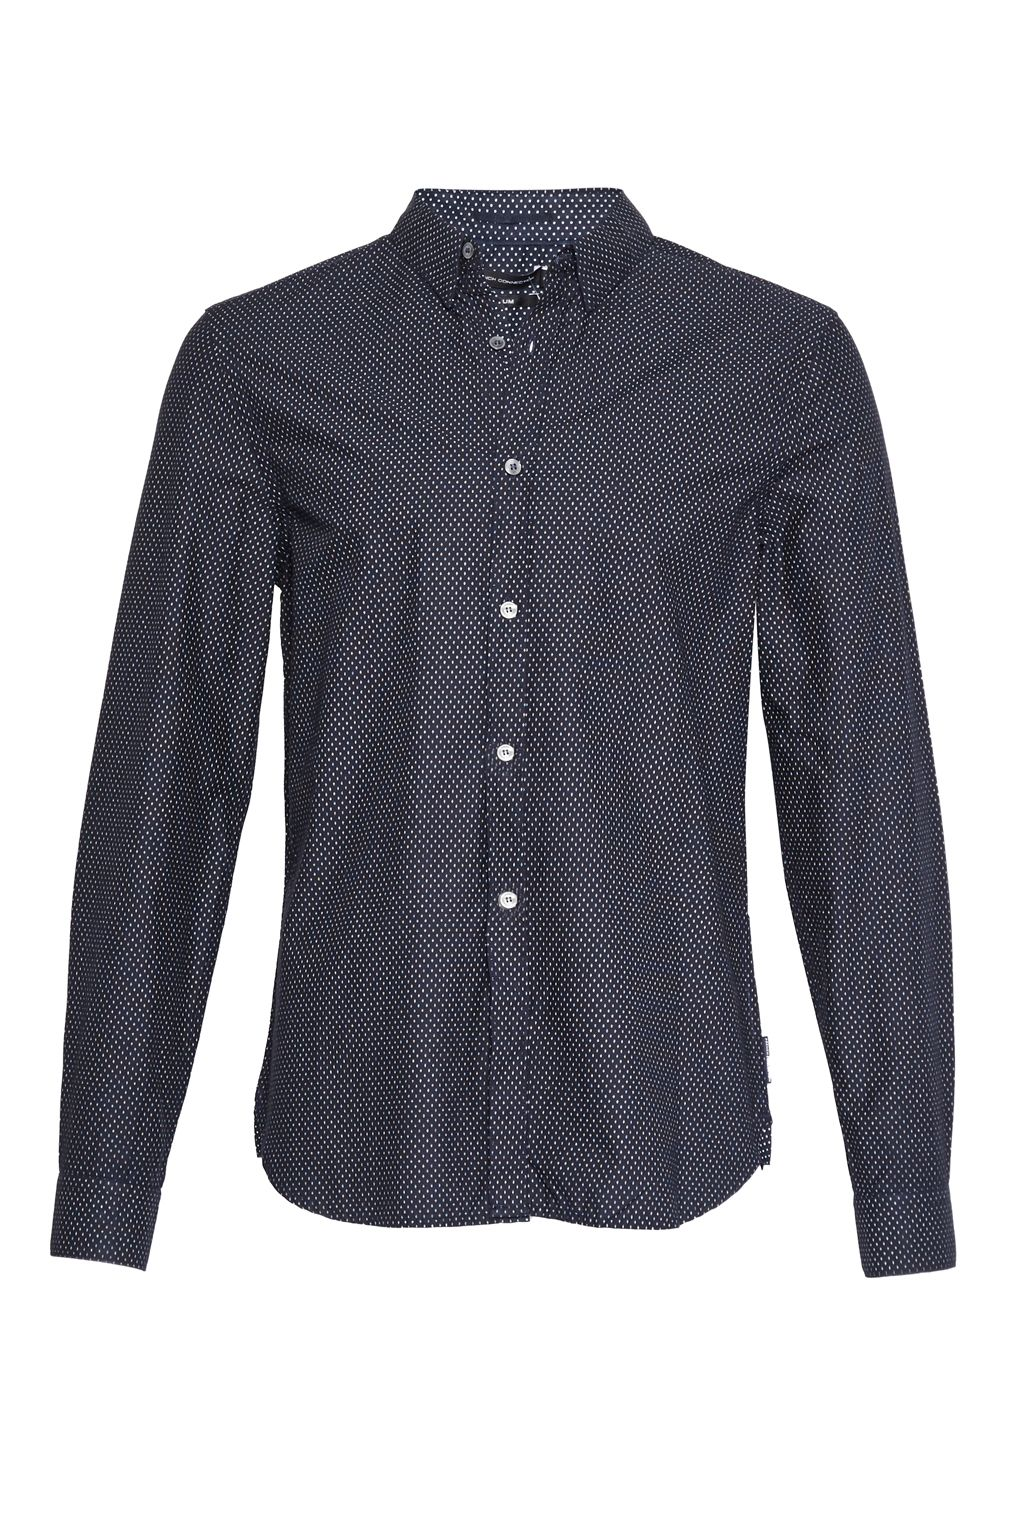 Mens French Connection Summer Divided Dot Slim Fit Shirt Navy